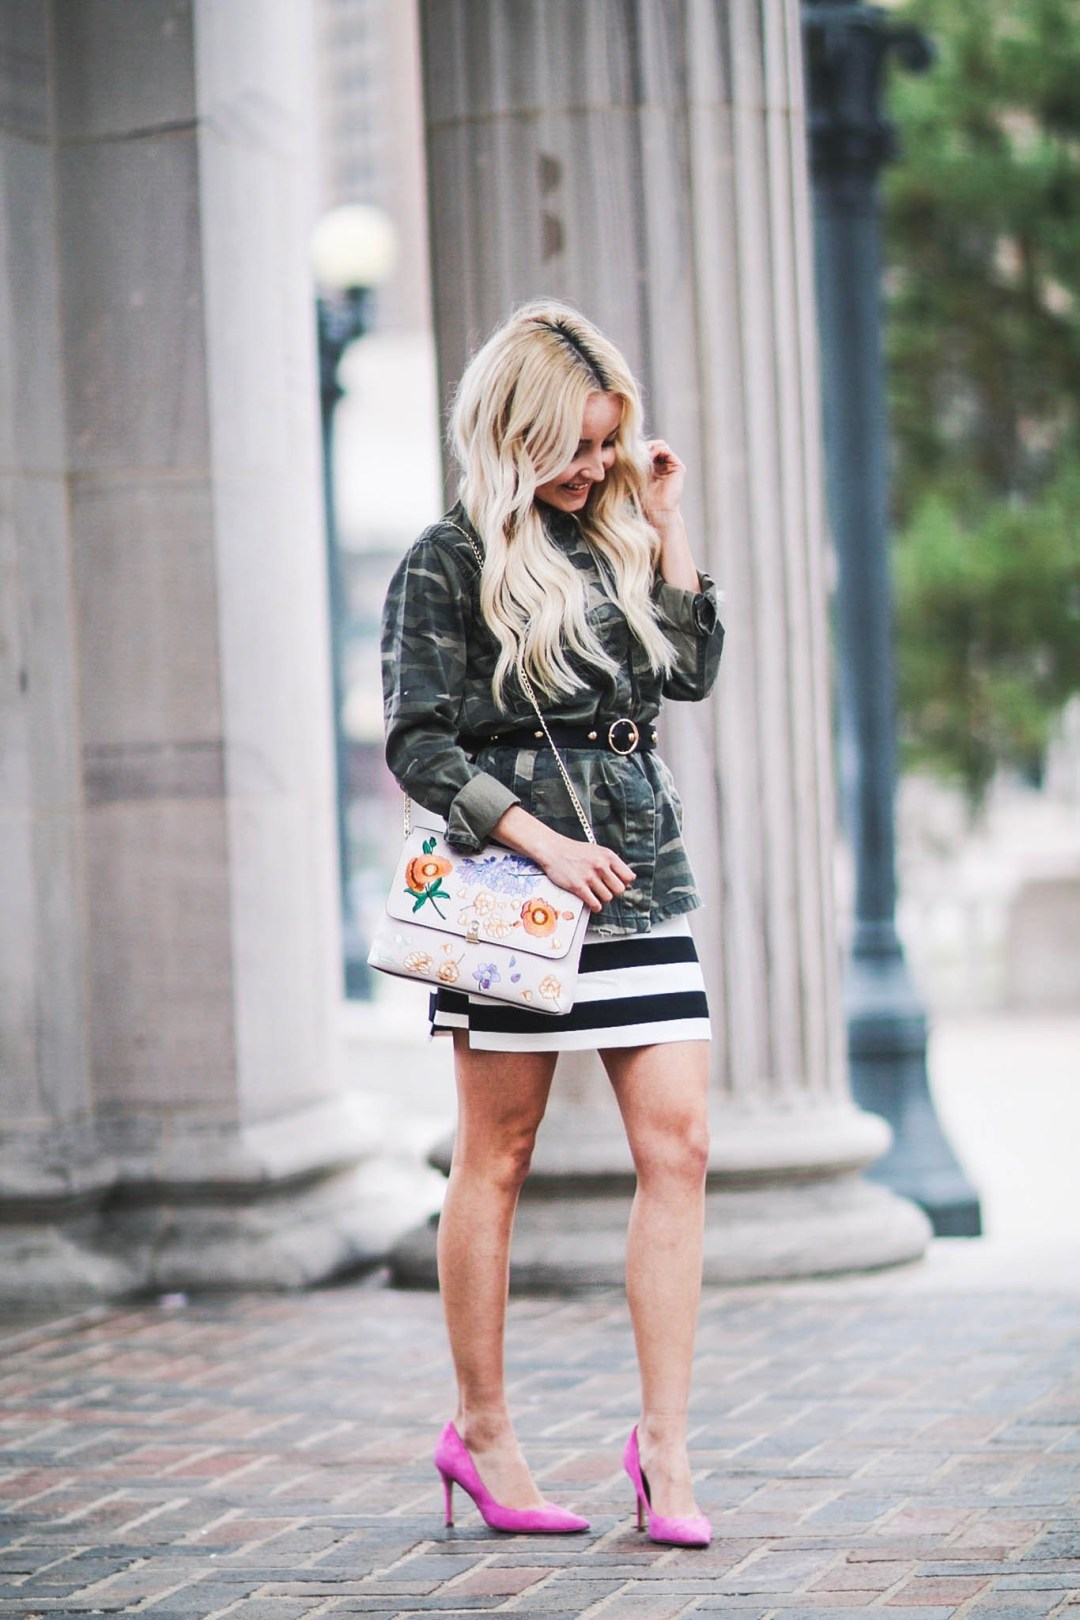 Alena Gidenko of modaprints.com styles a jacket as a top and shows tips on mixing prints for Spring